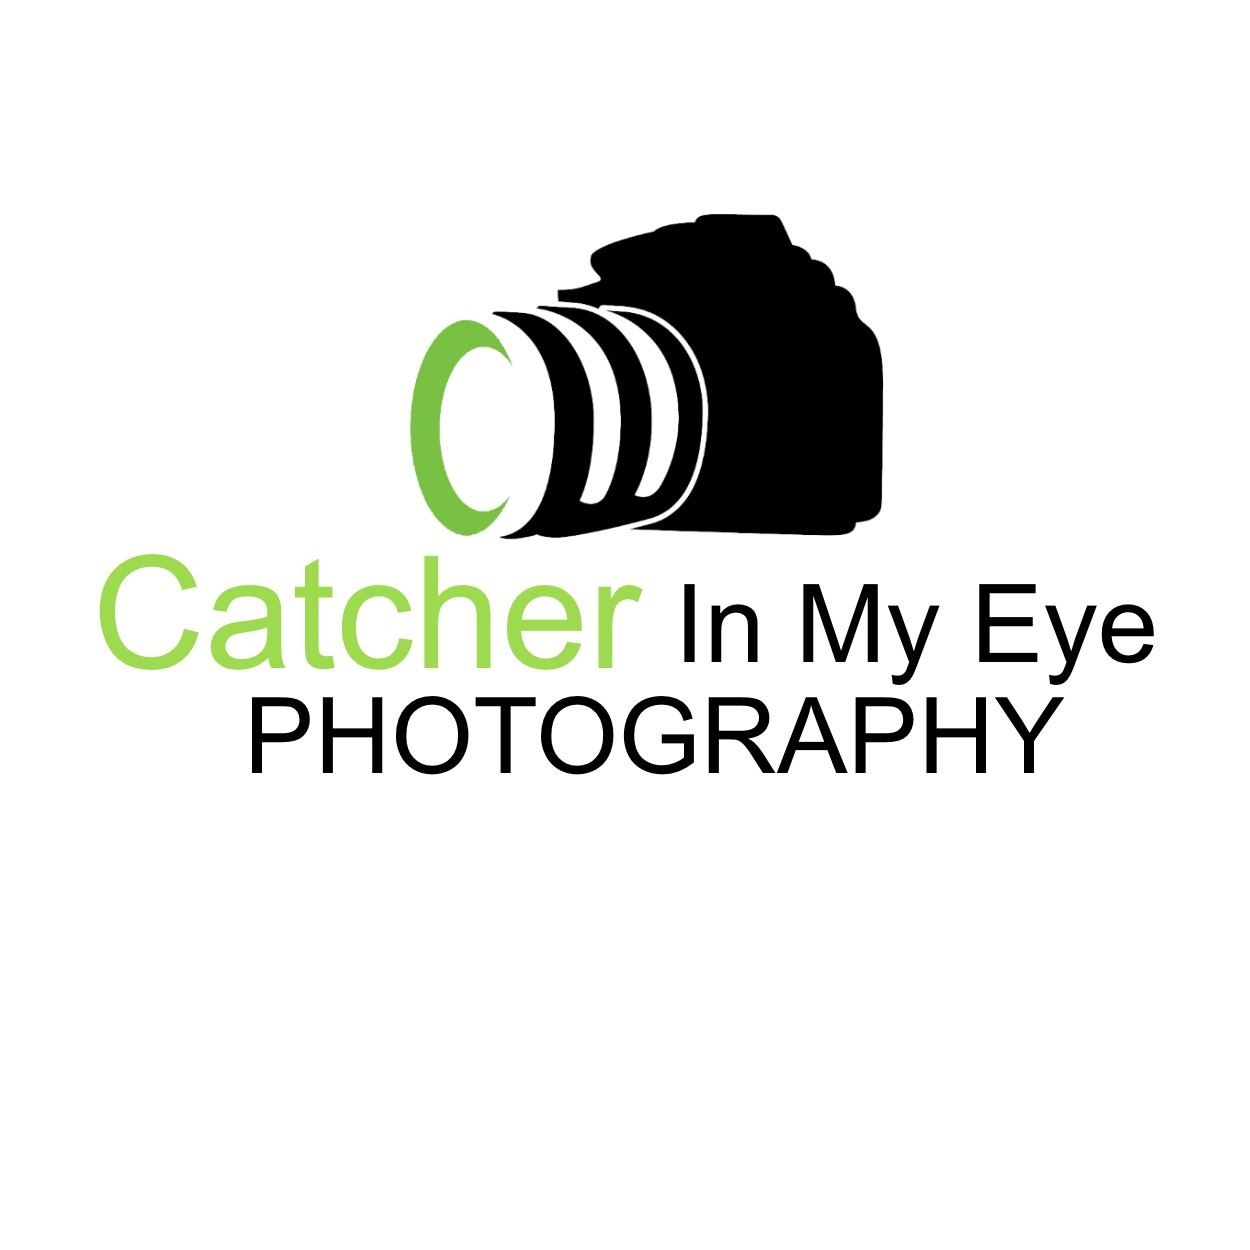 how to put photography logo on pictures